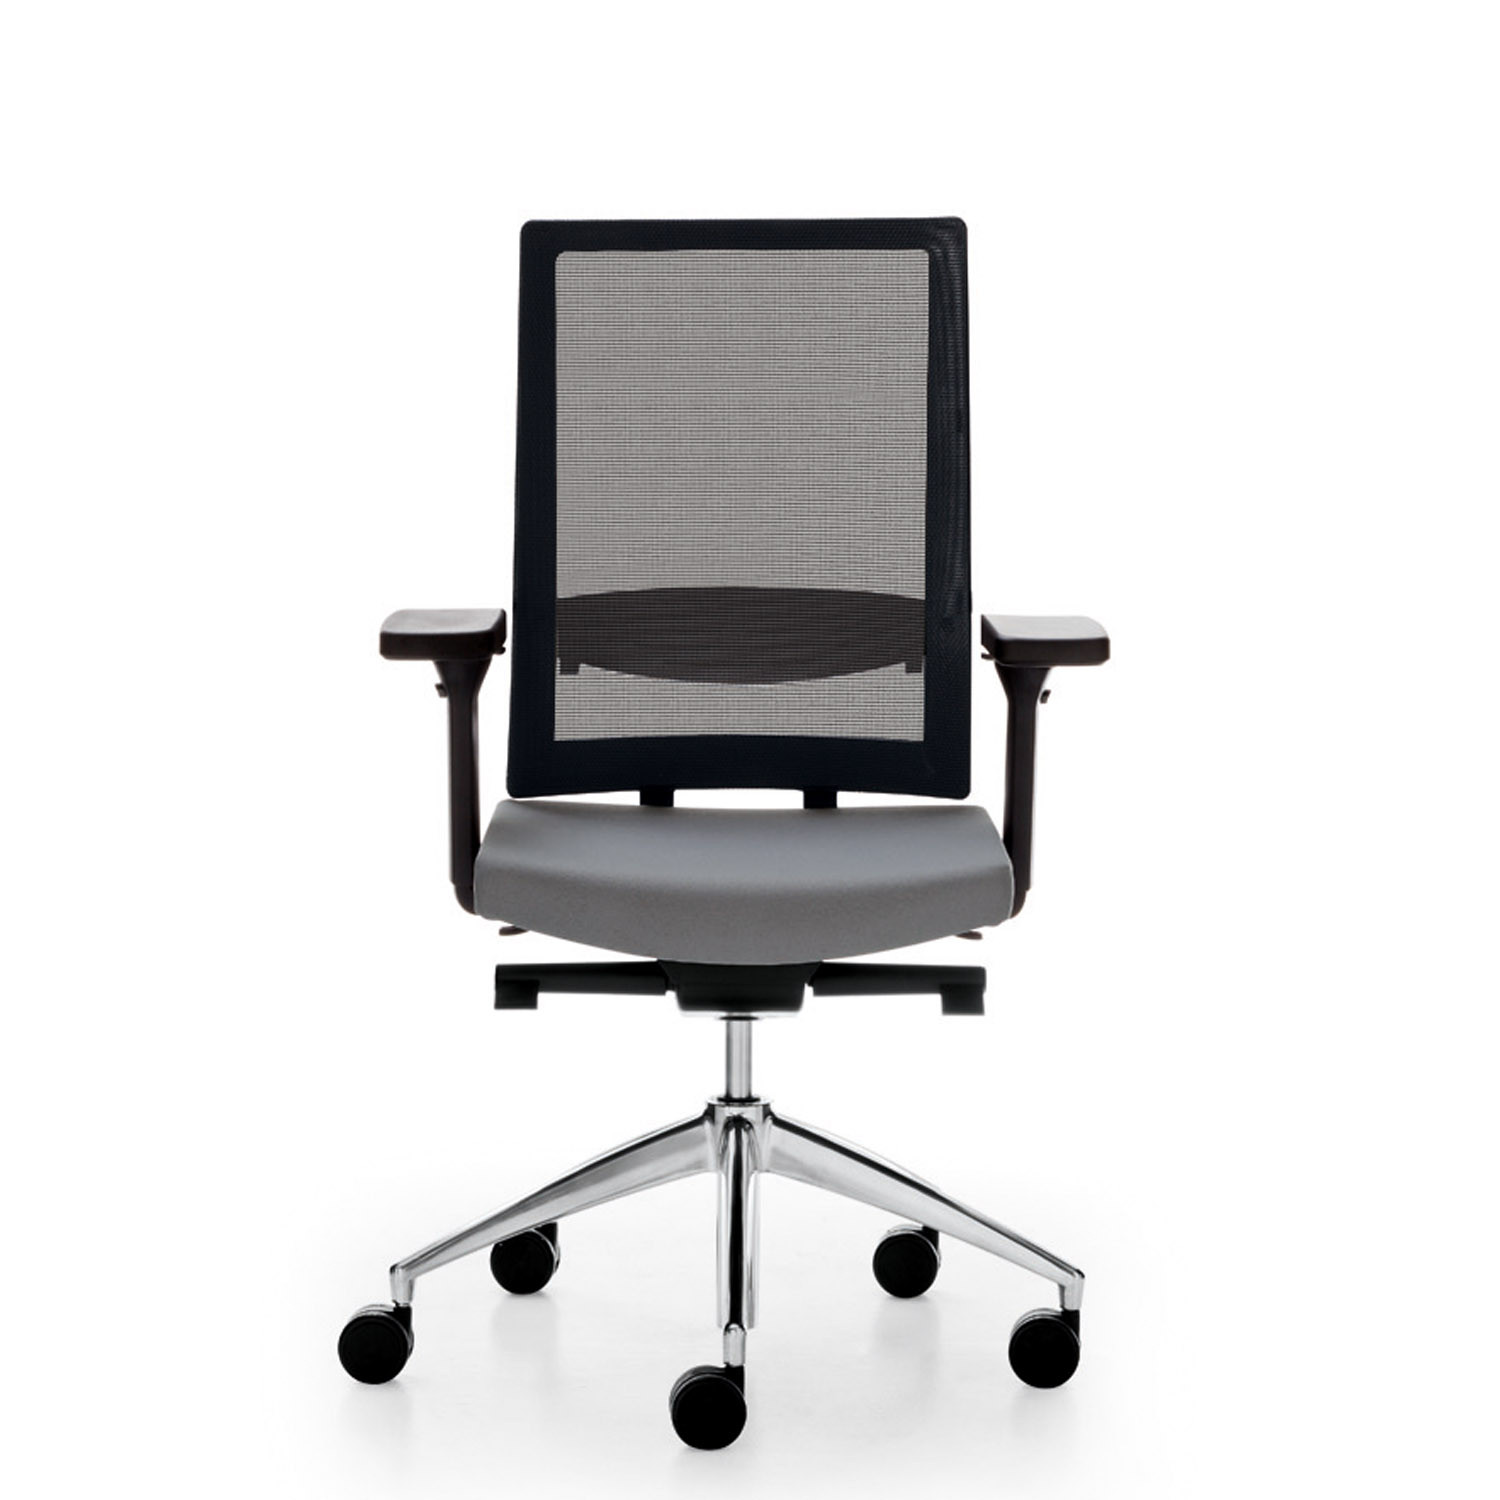 Blue Office Chair with Lumbar Support